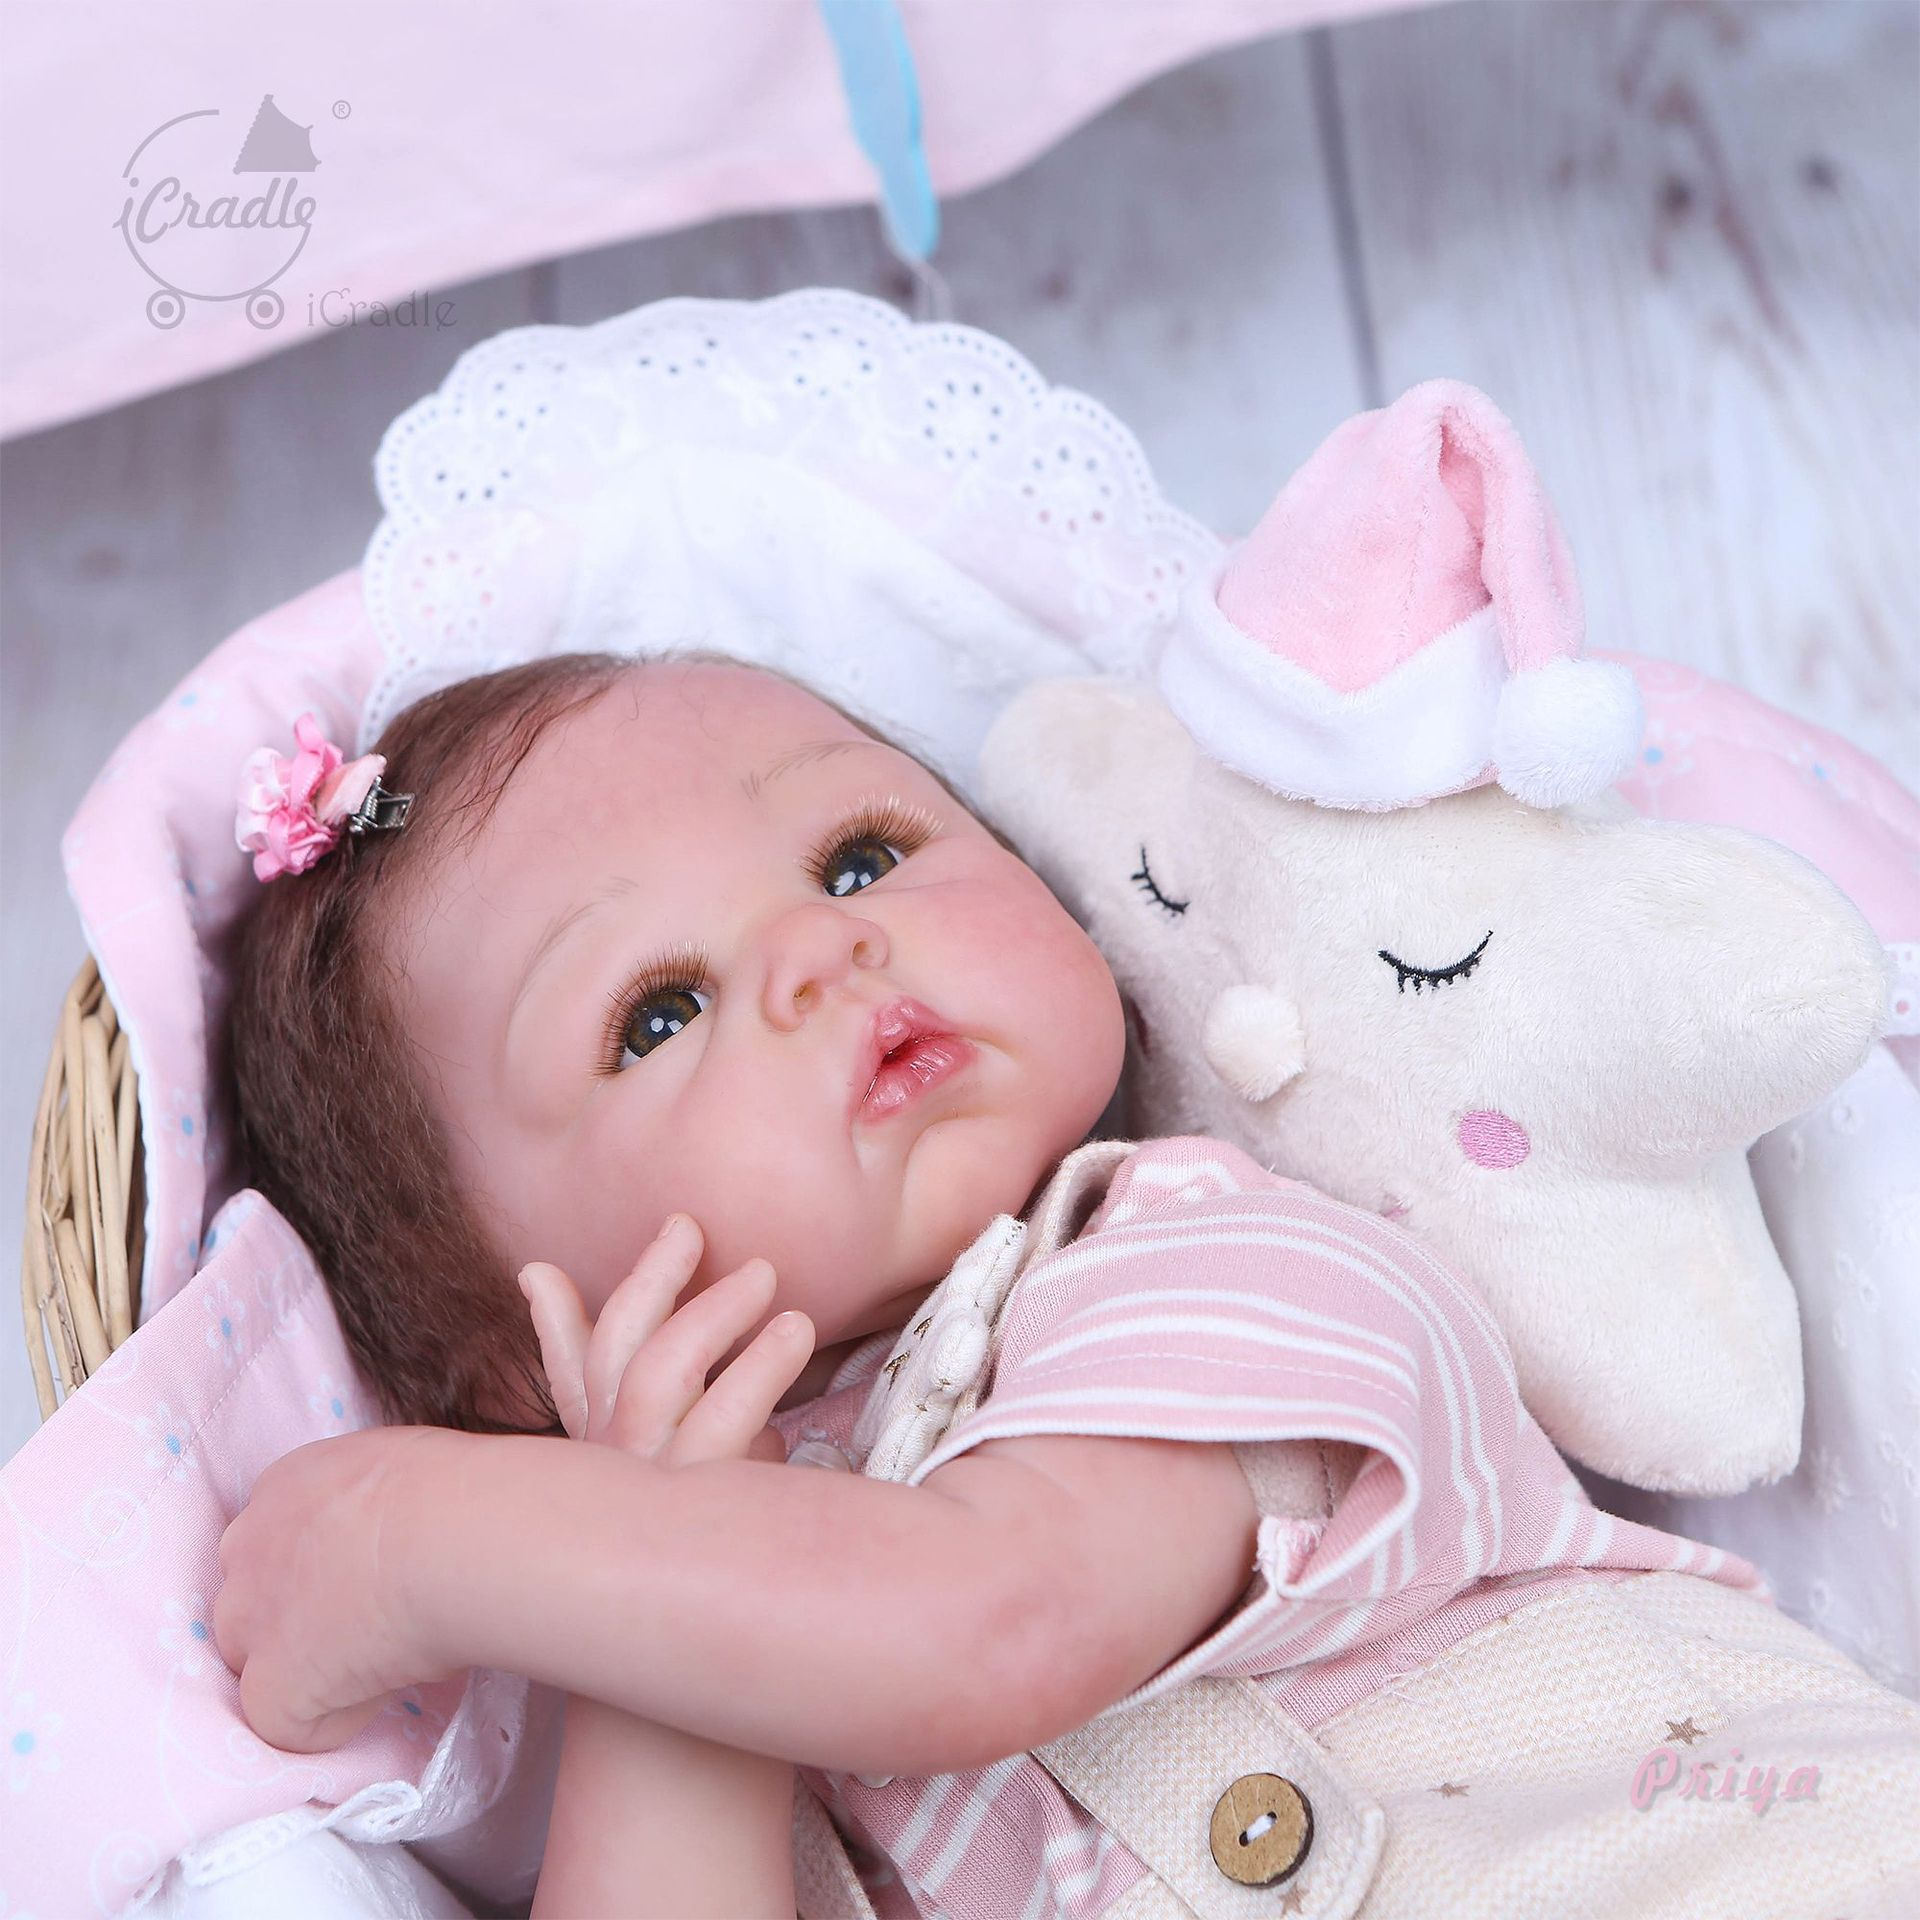 Entirely Handmade High-End Model Rebirth Infant Doll Creative Cool Gift Cute Realistic Baby